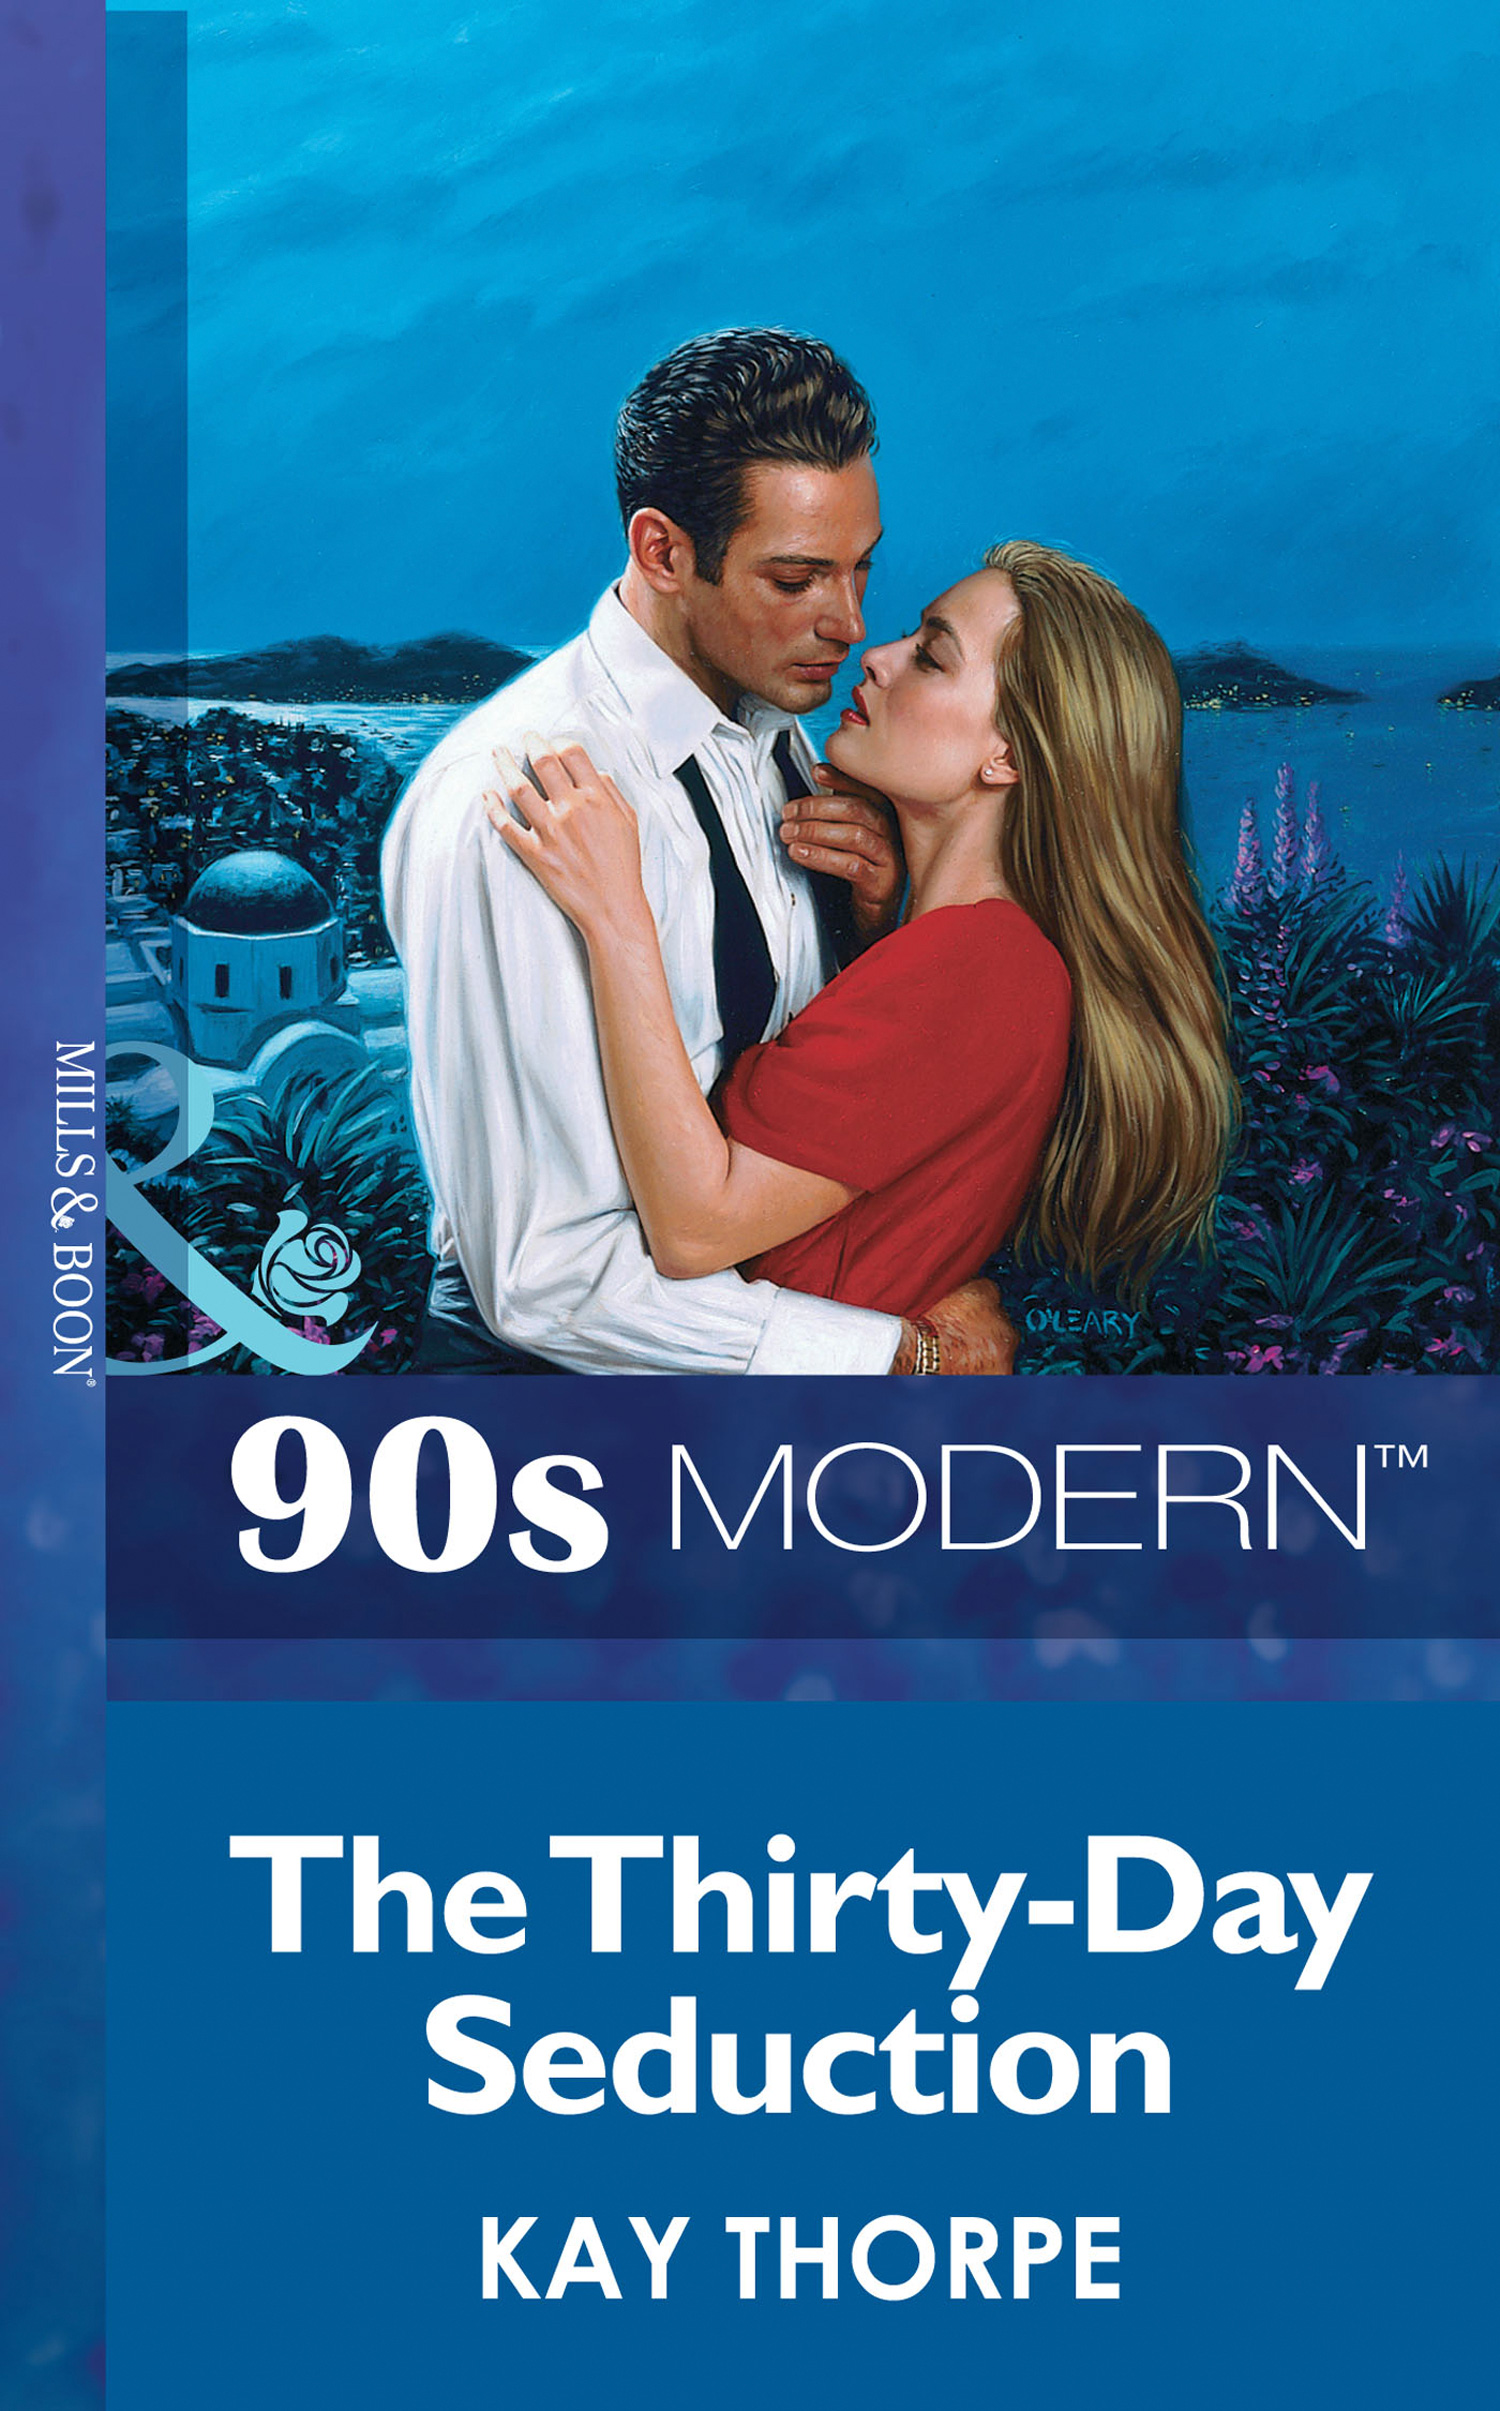 The Thirty-Day Seduction